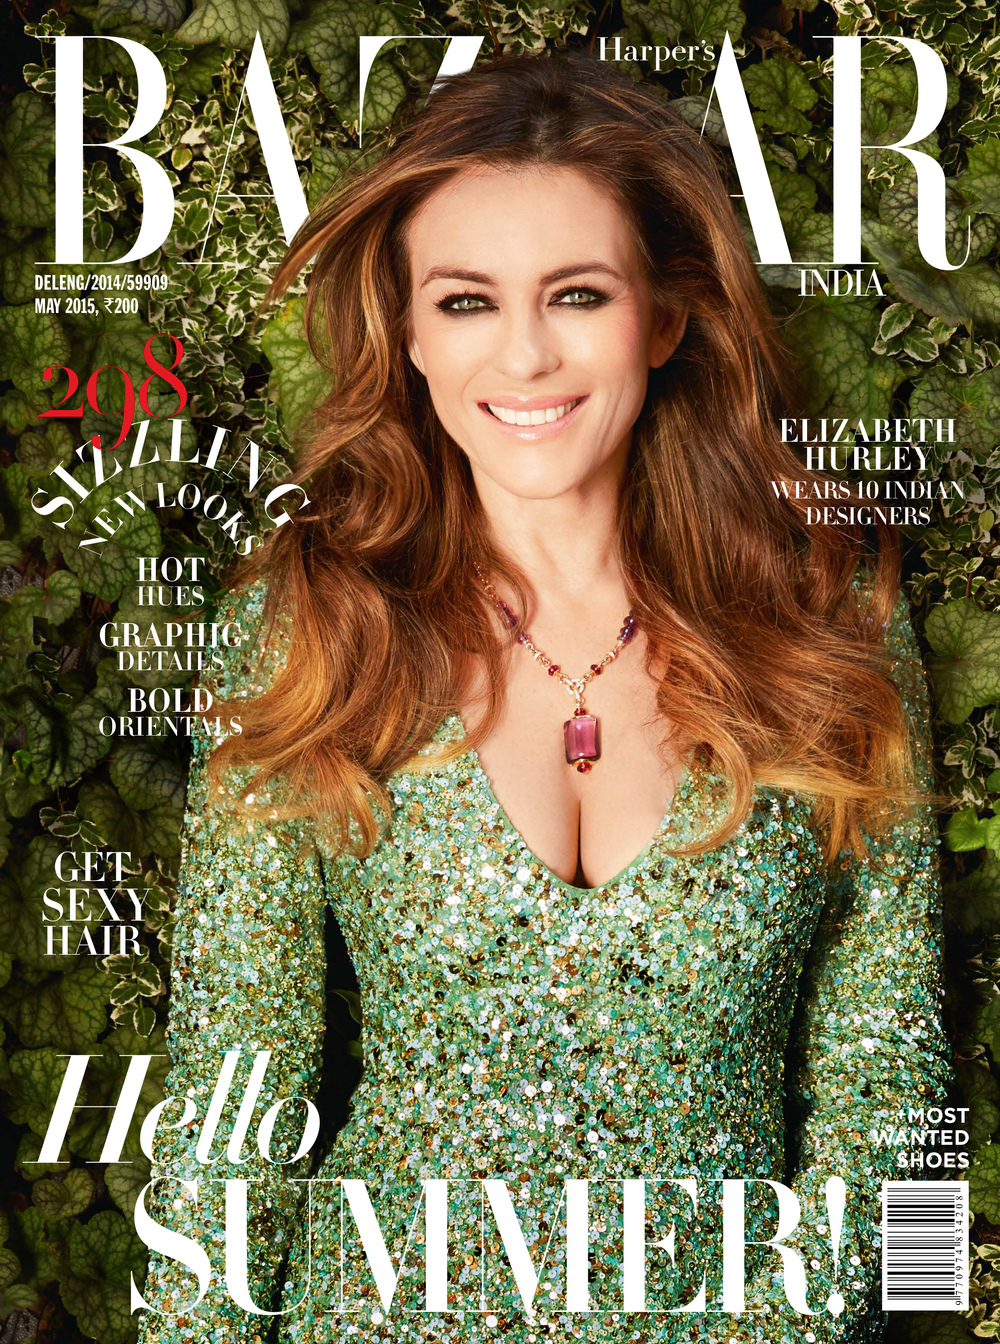 PC Harpers Bazaar May 15 Cover.jpg